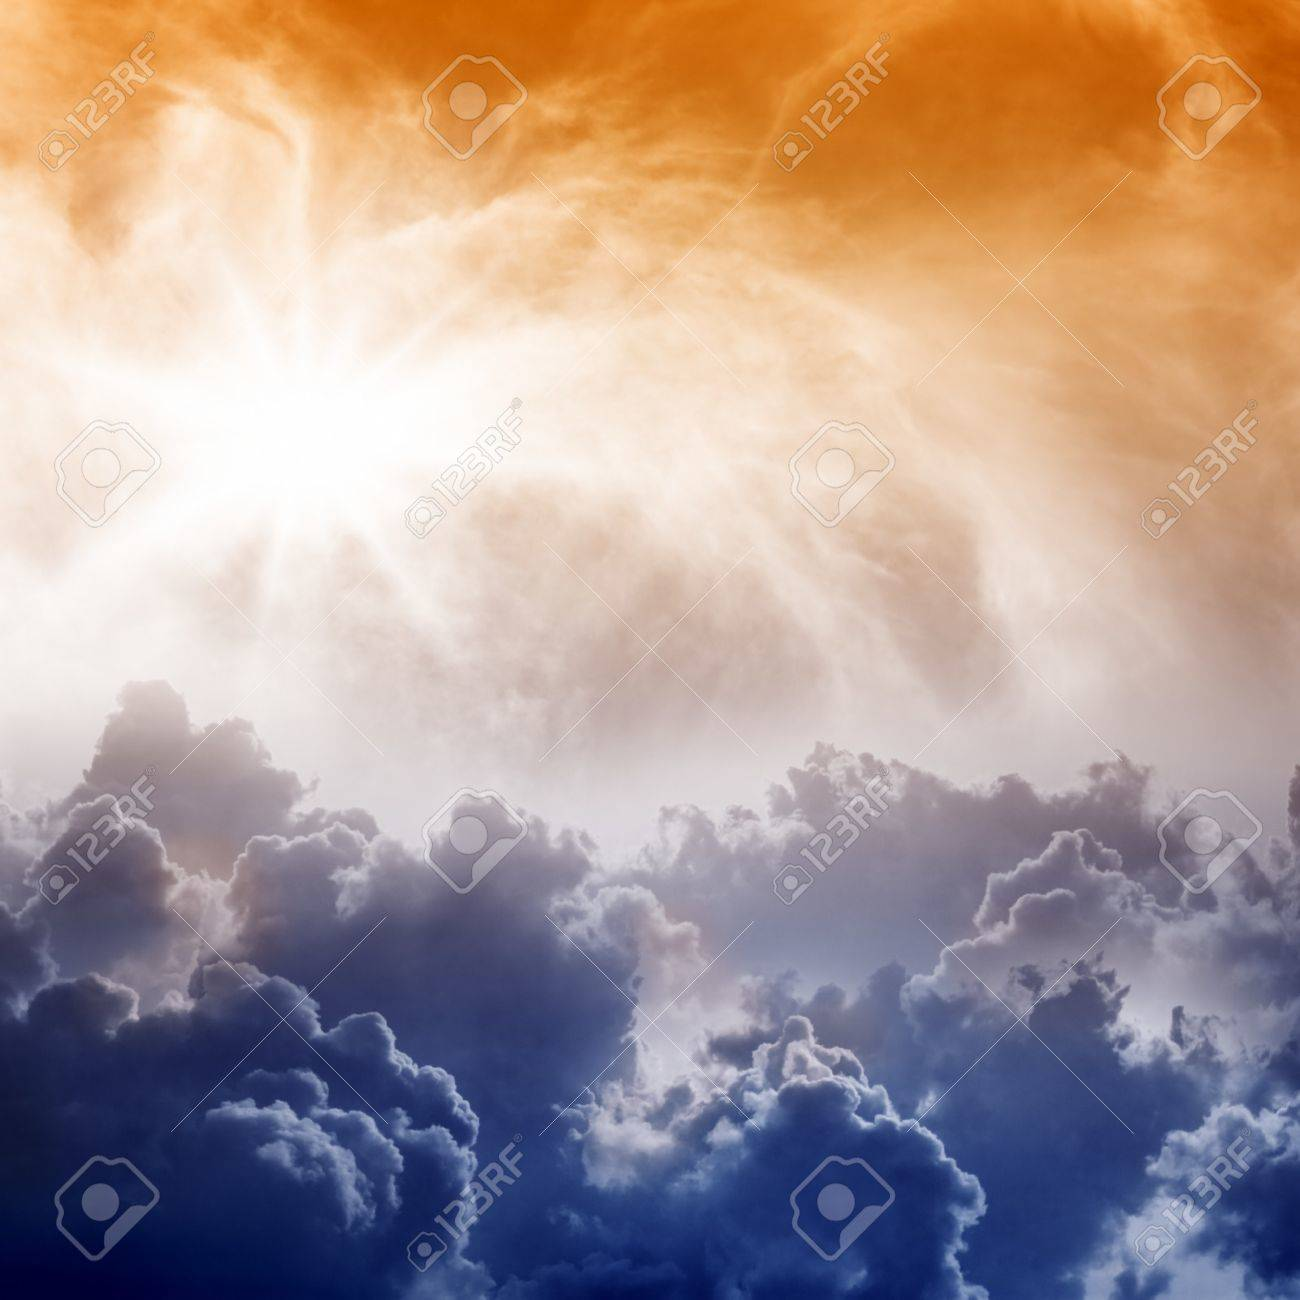 Dramatic Impressive View From Heaven With Bright Sun And Clouds ...